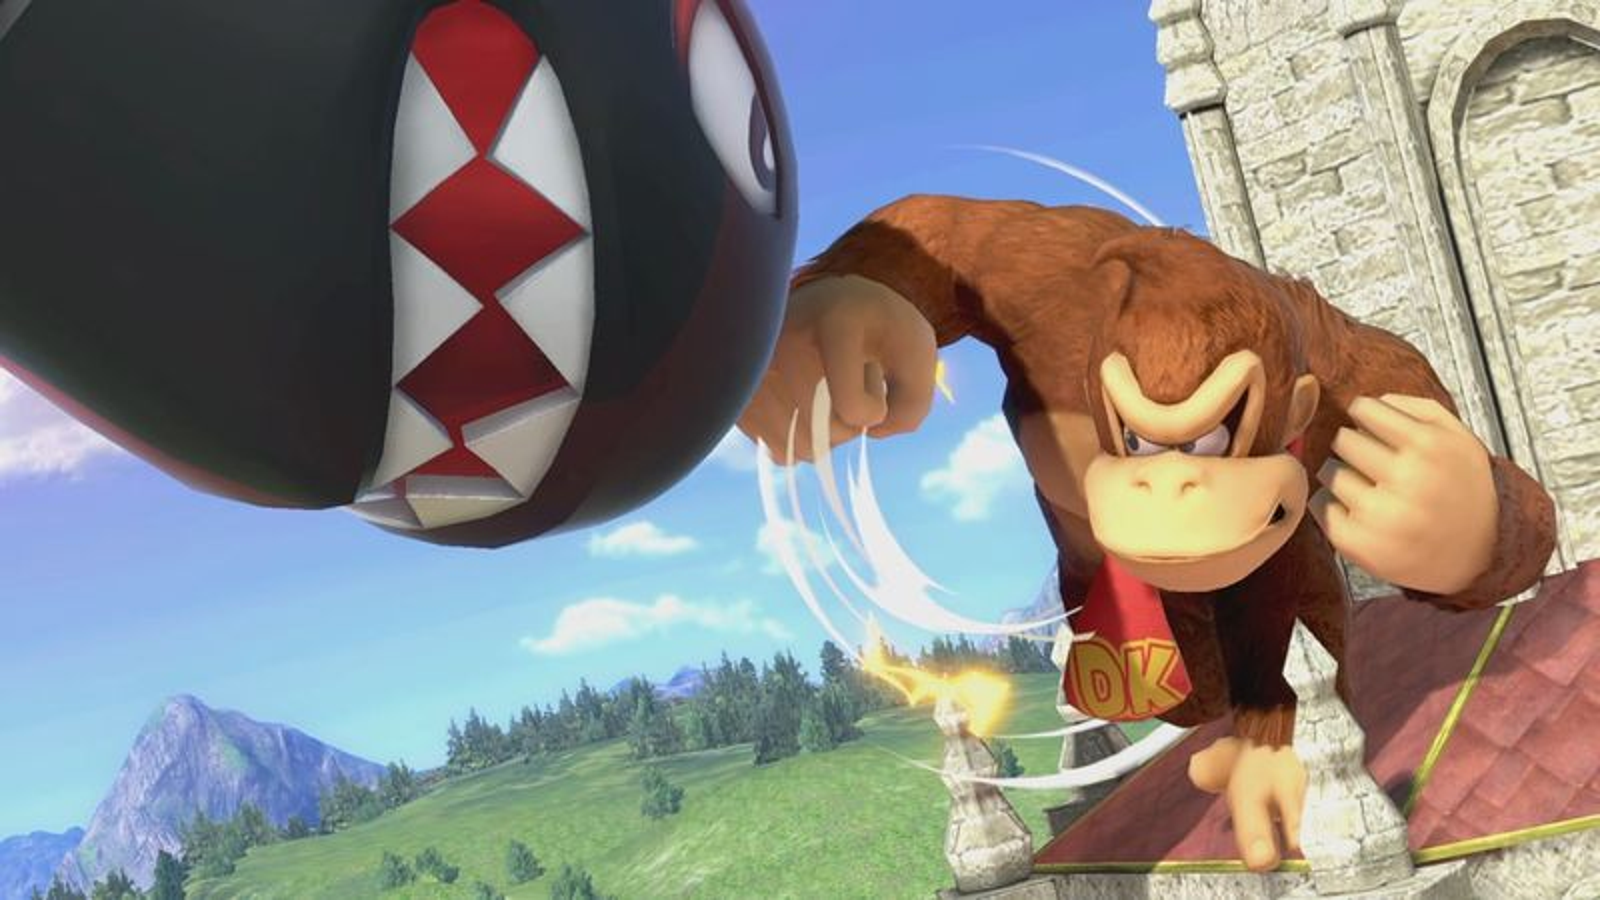 Smash Players Are Begging Nintendo To Fix Donkey Kong's Giant Punch